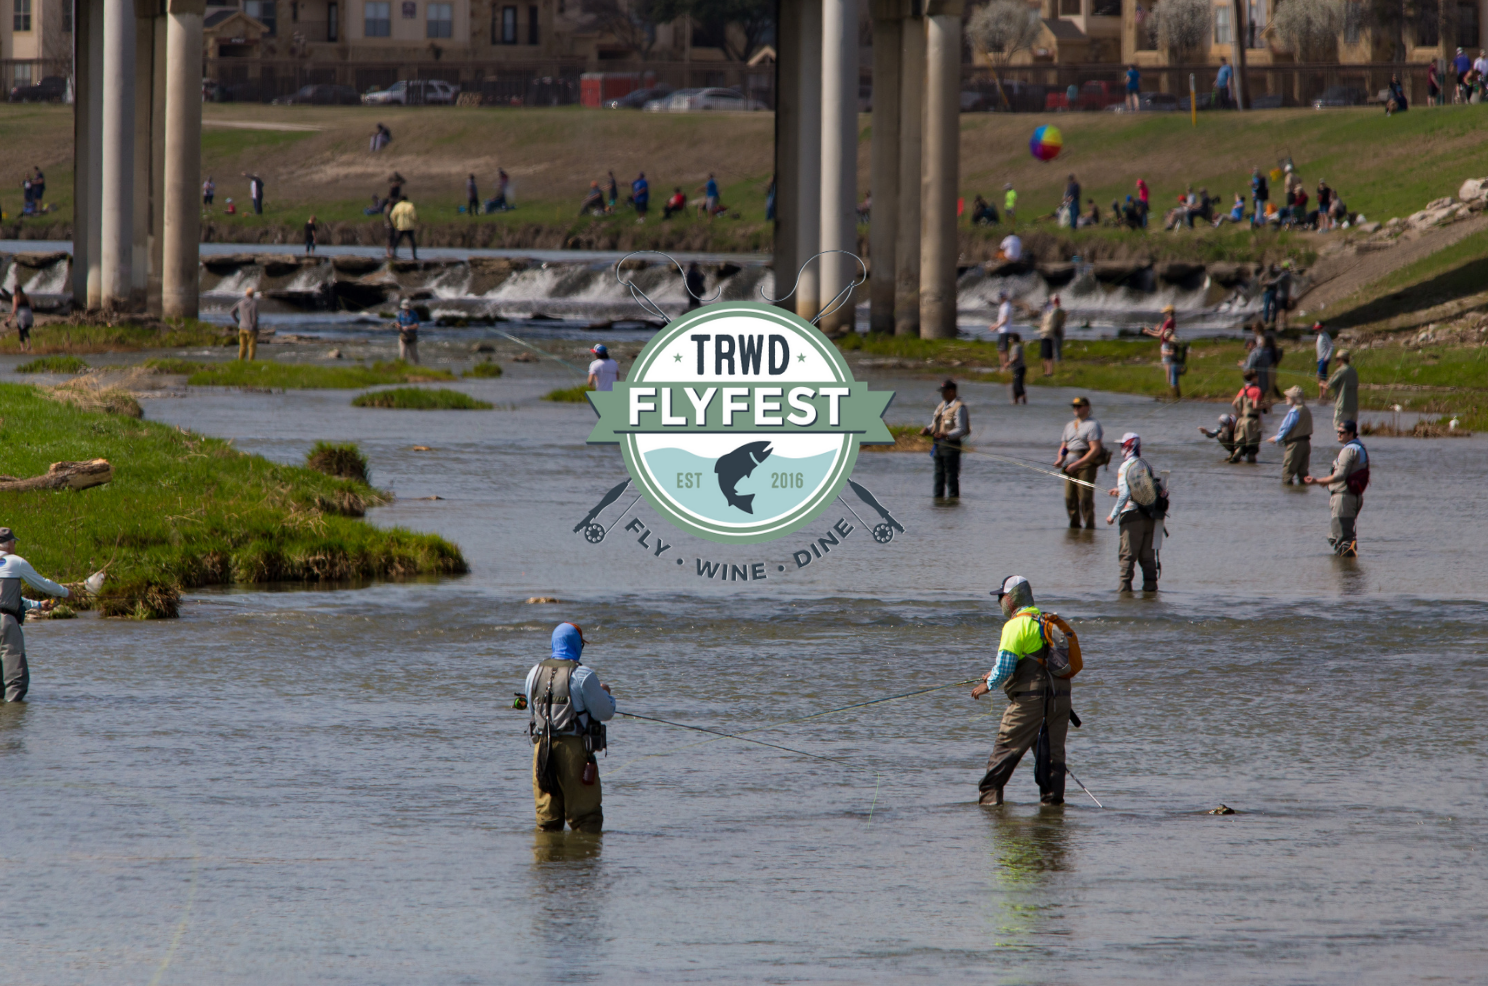 Countdown to TRWD Flyfest on March 13